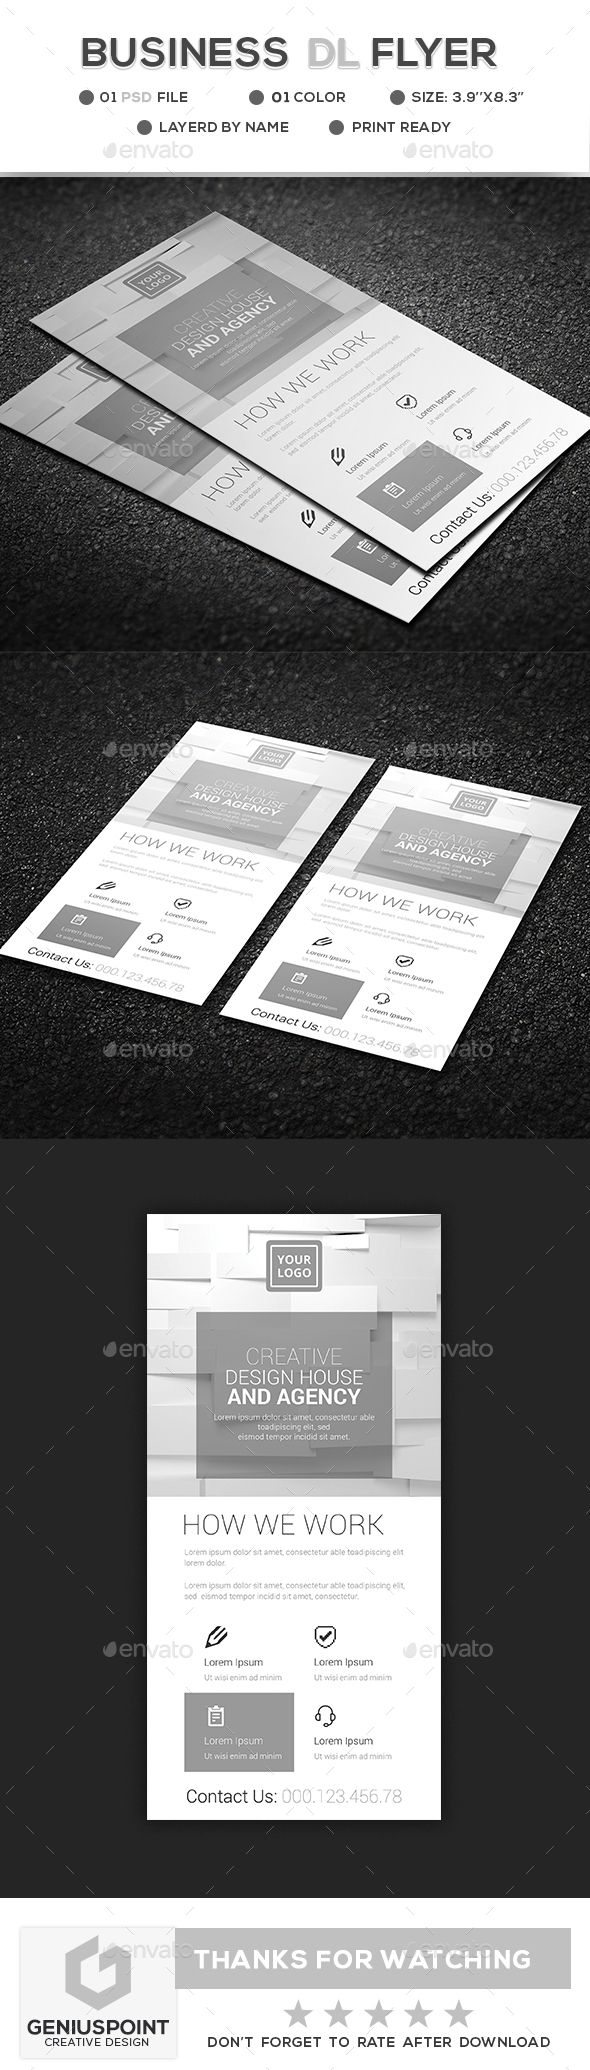 Business DL Flyer | Flyer template, Template and Business